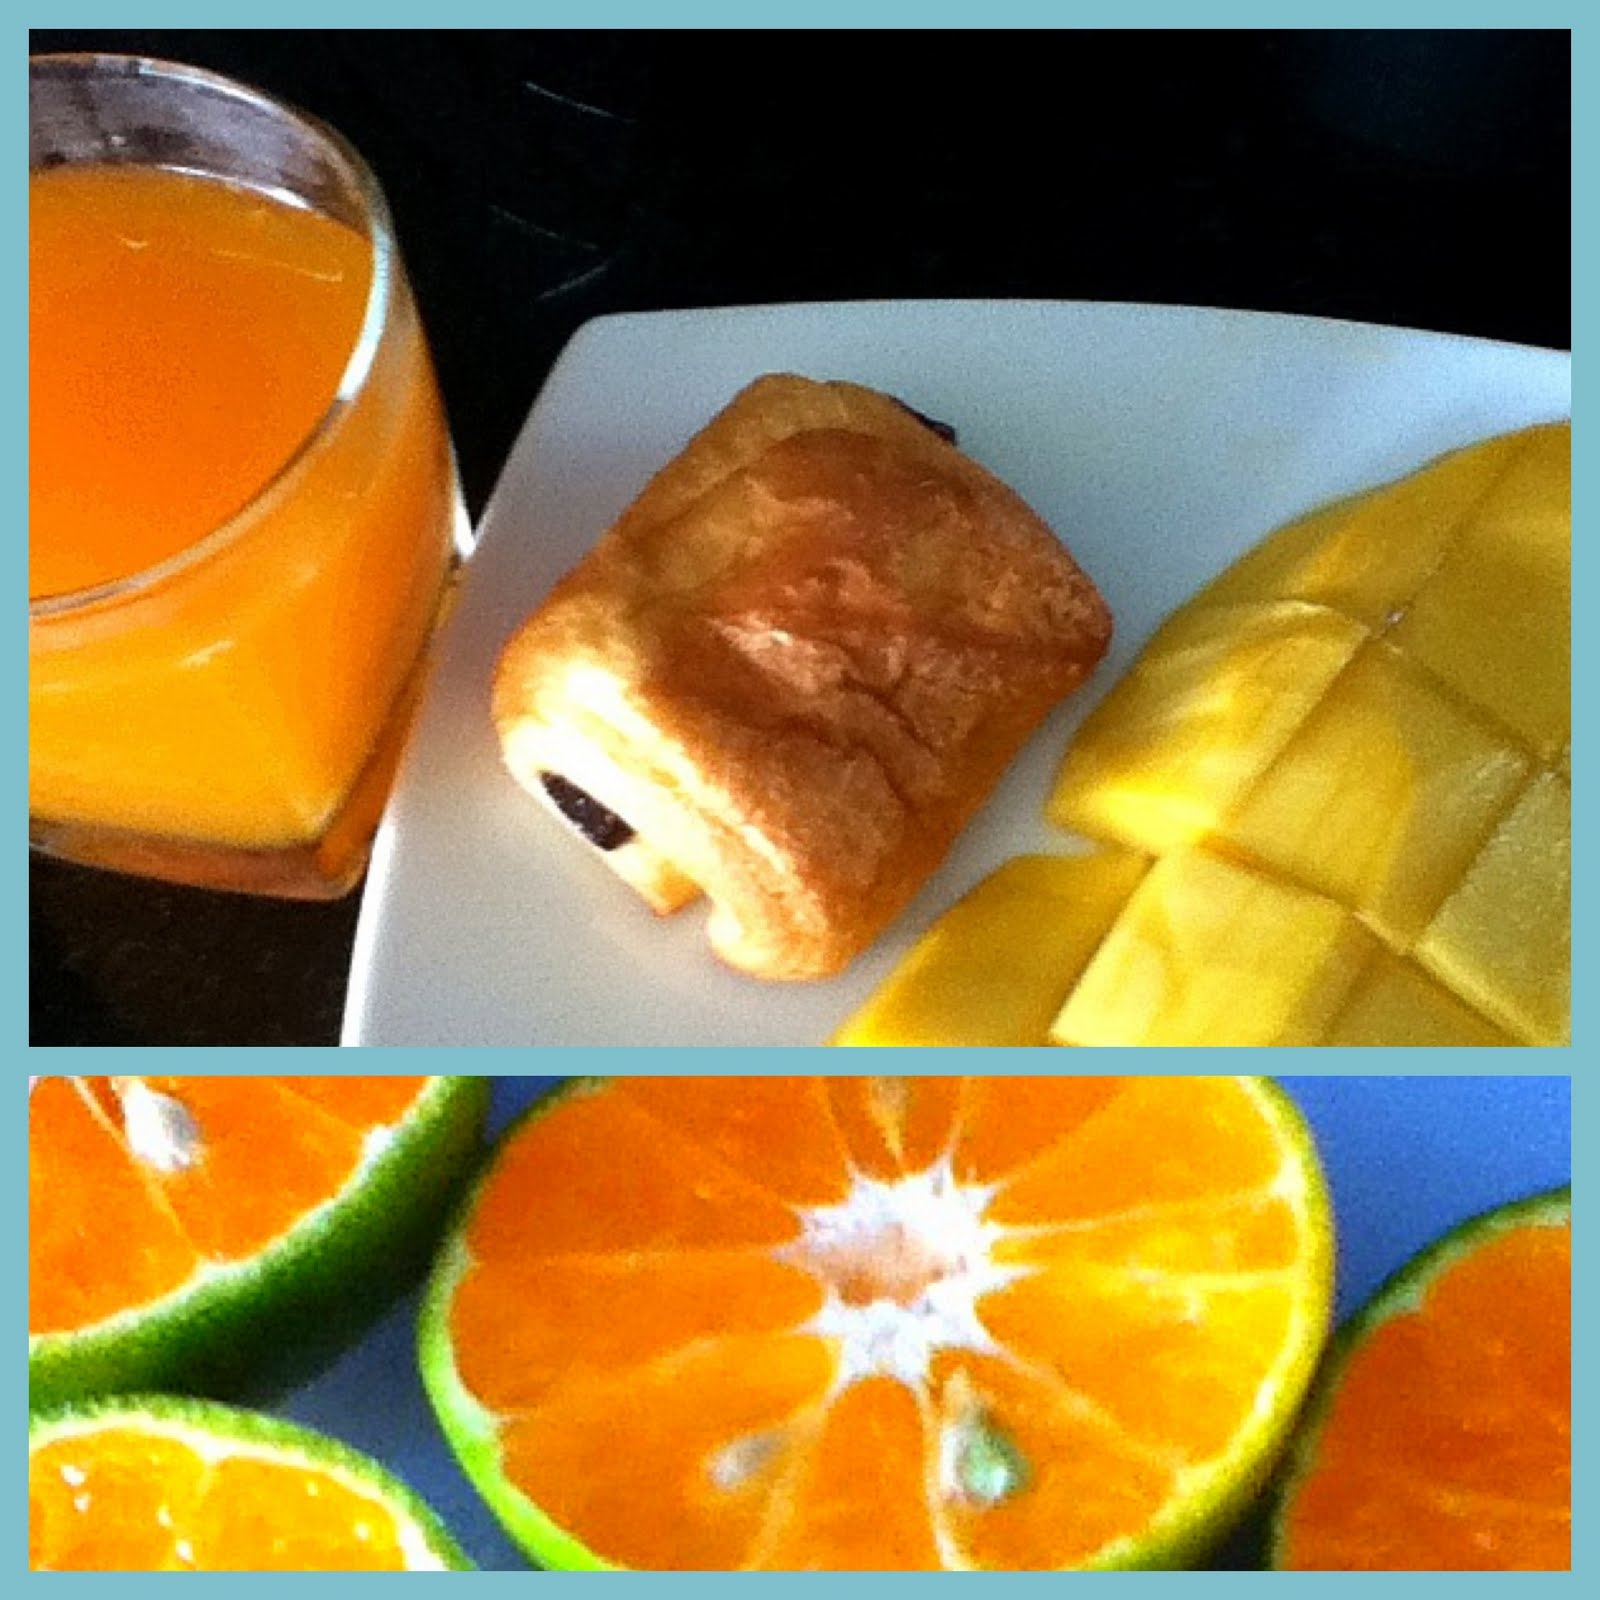 freshly squeezed orange juice, chocolate croissant and half of a mango